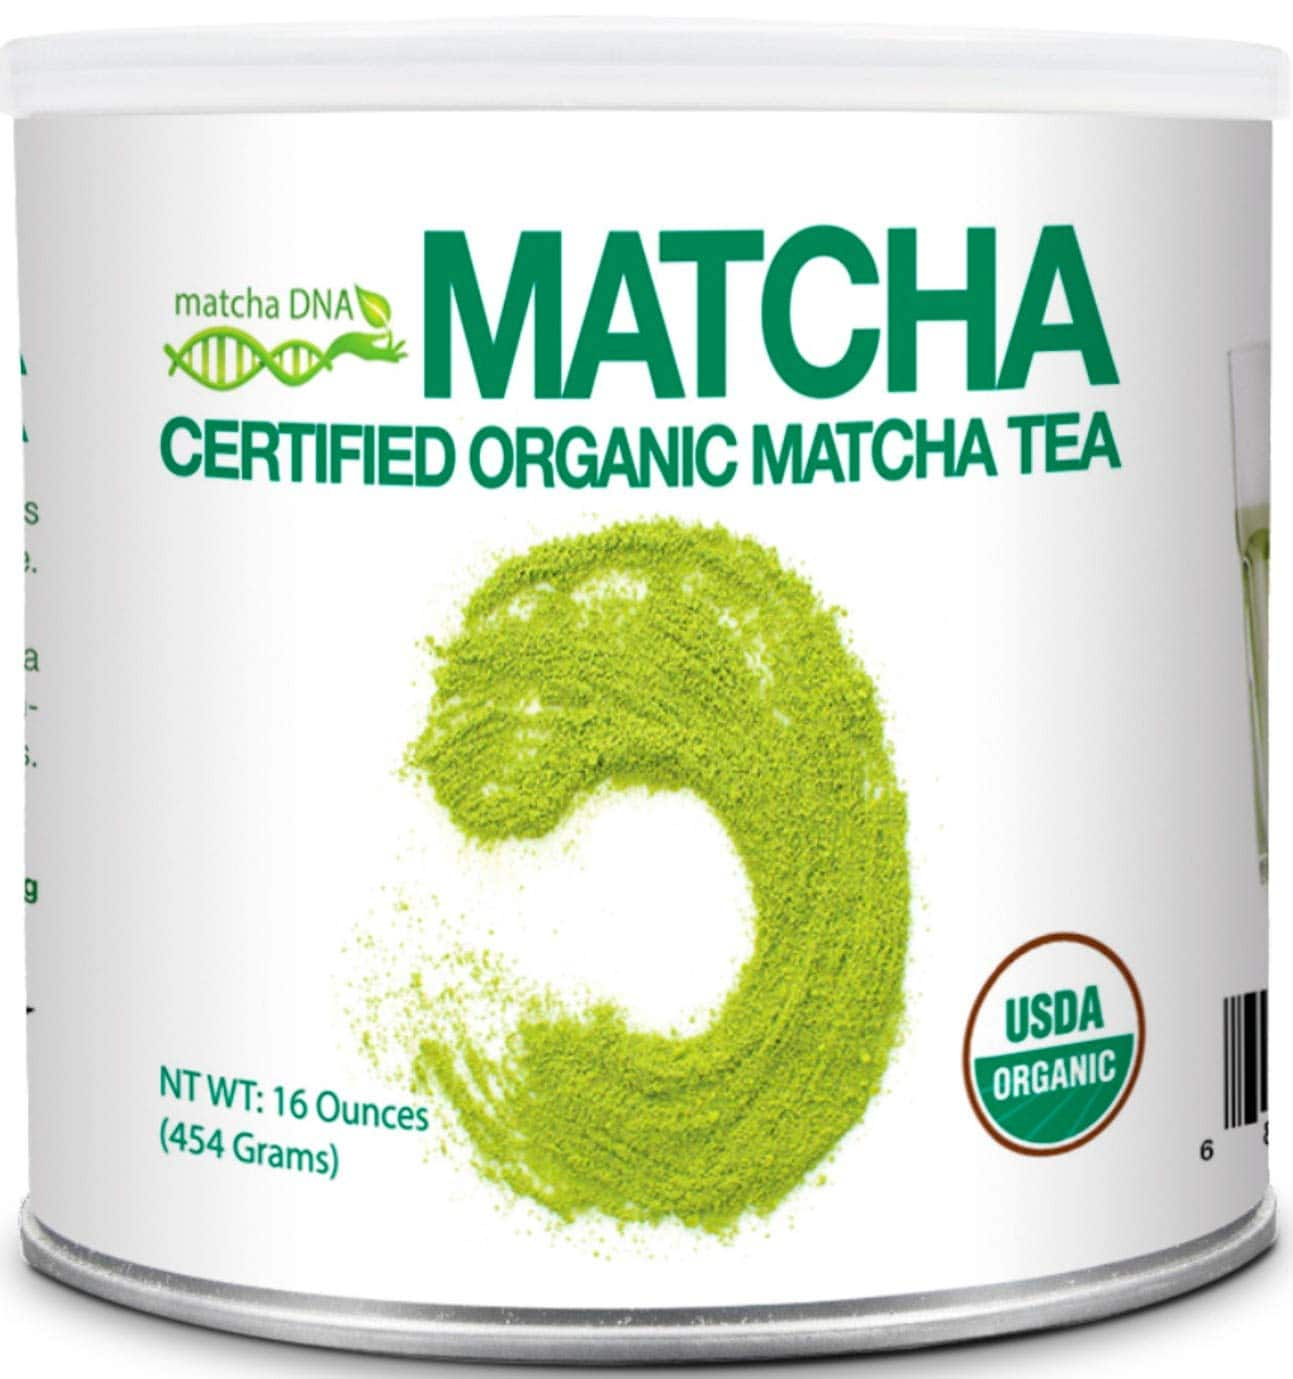 MatchaDNA 1 LB Certified Organic Matcha Green Tea Powder (16 OZ TIN CAN) $15.32 after coupon and S&S